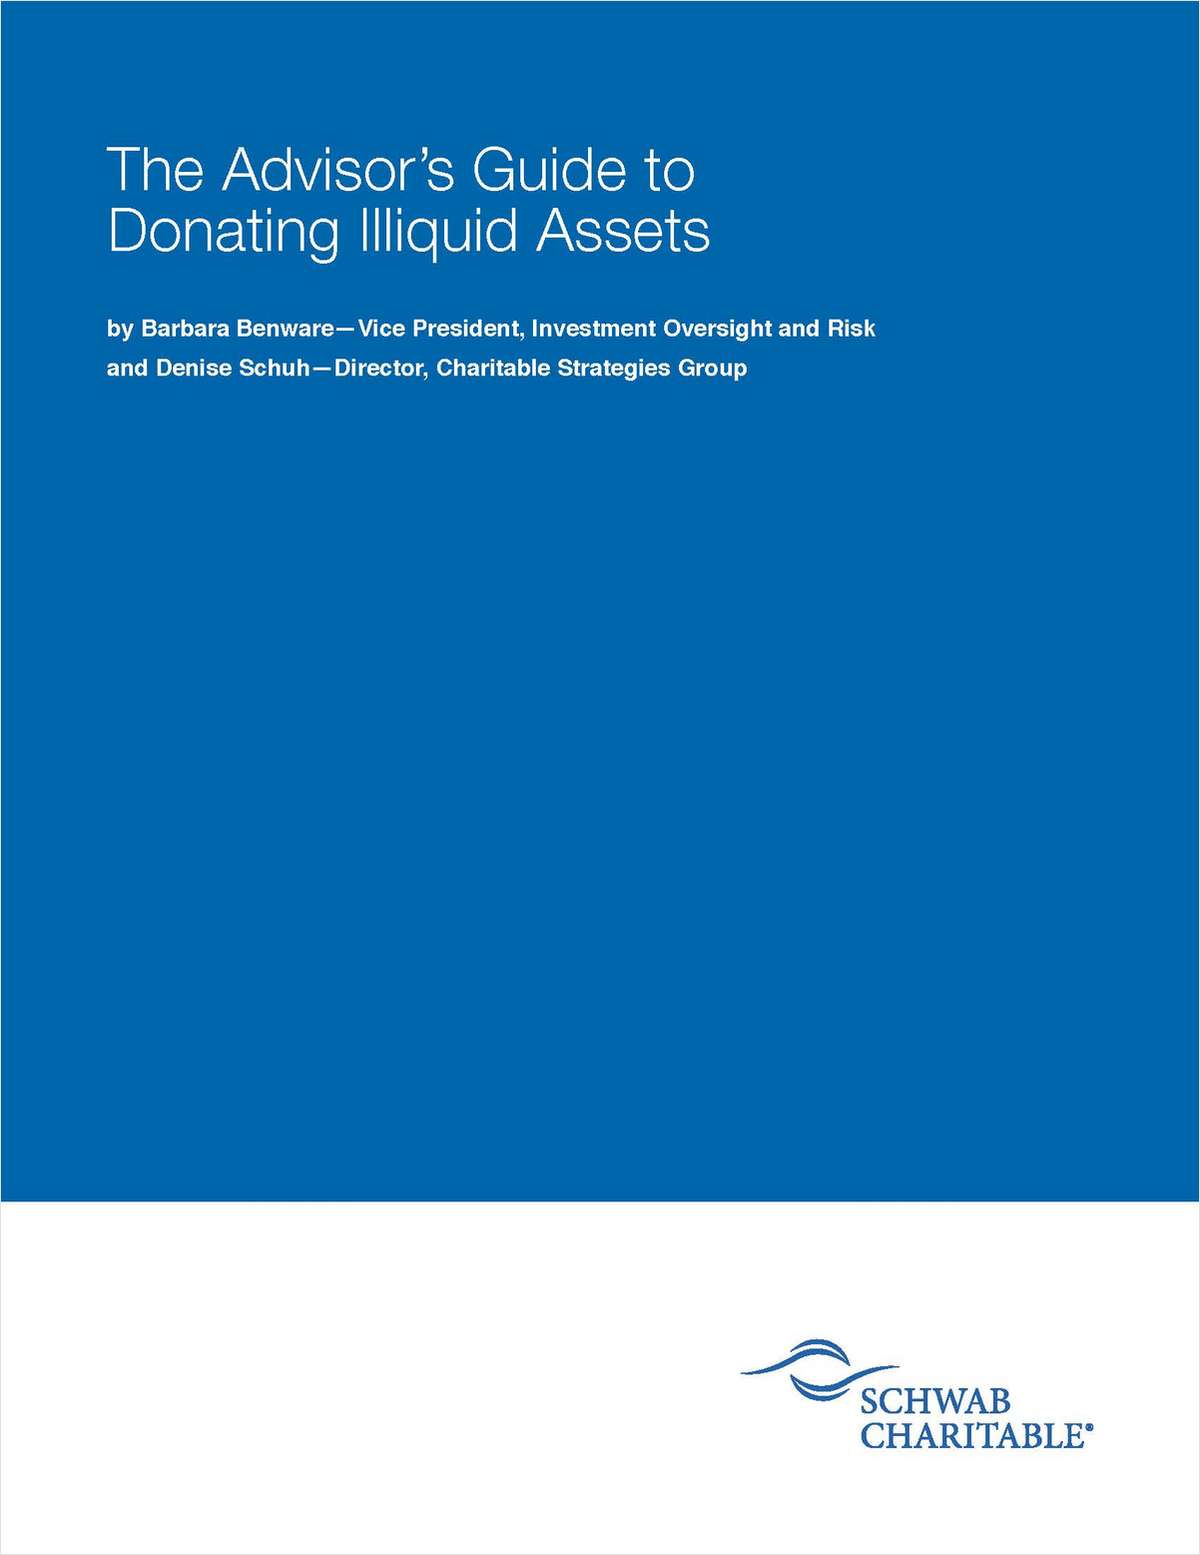 The Advisor's Guide to Donating Illiquid Assets to Charity